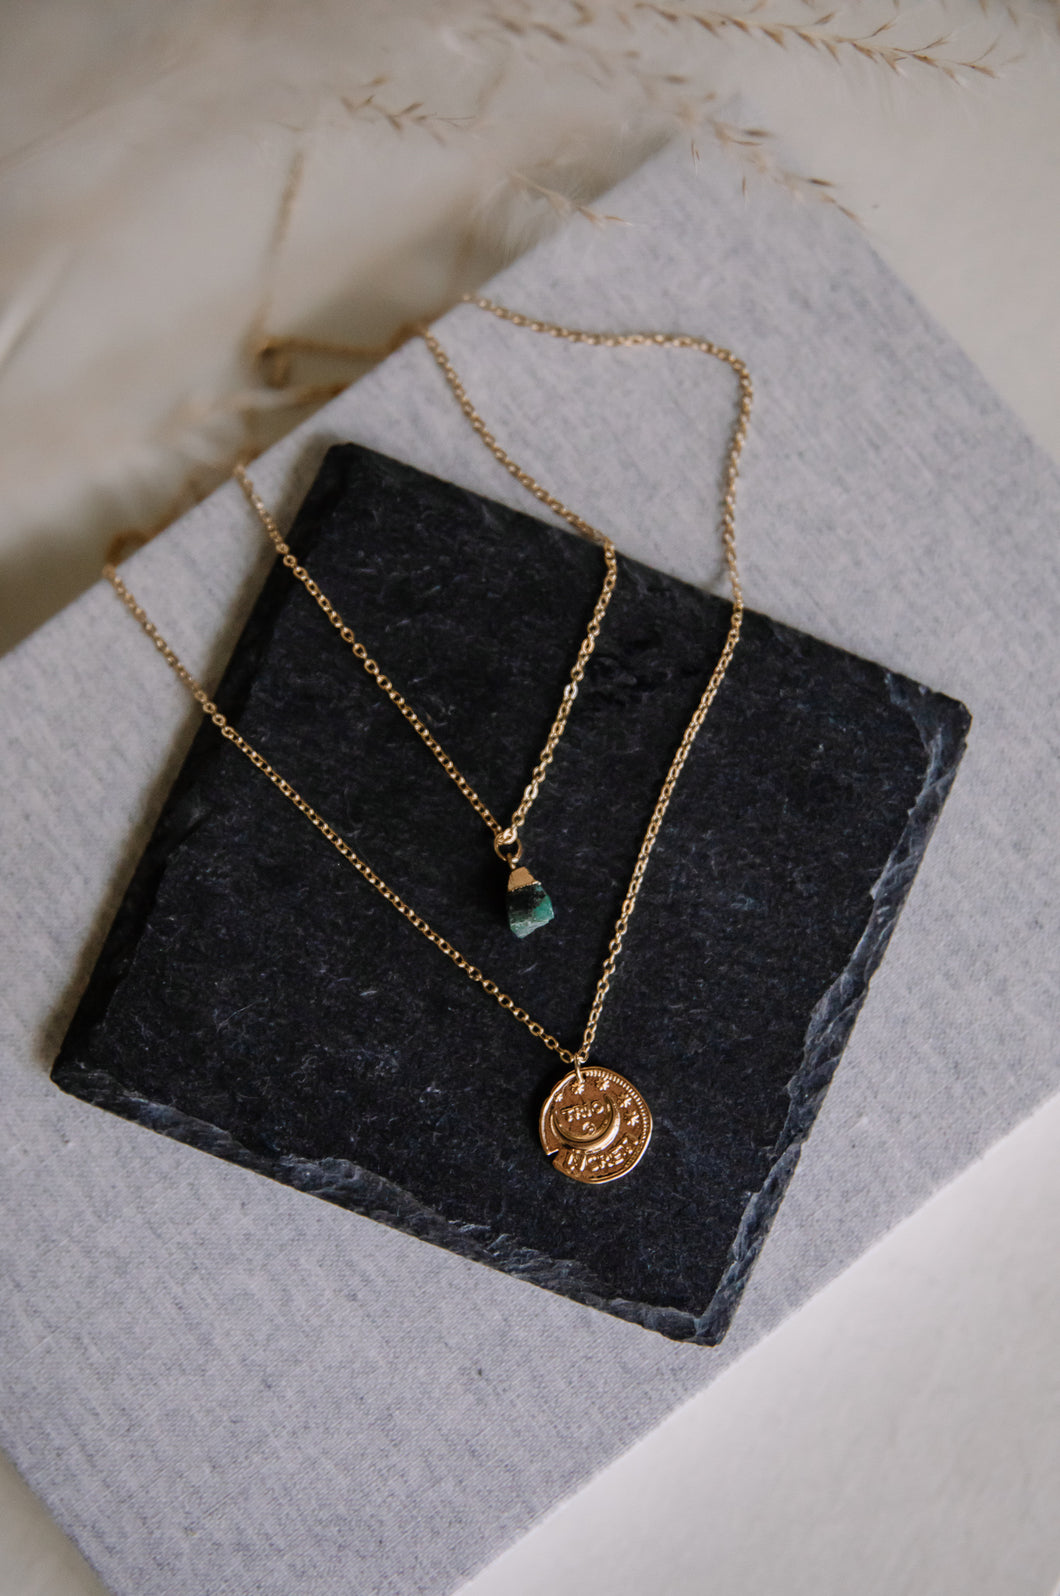 The raw emerald necklace //